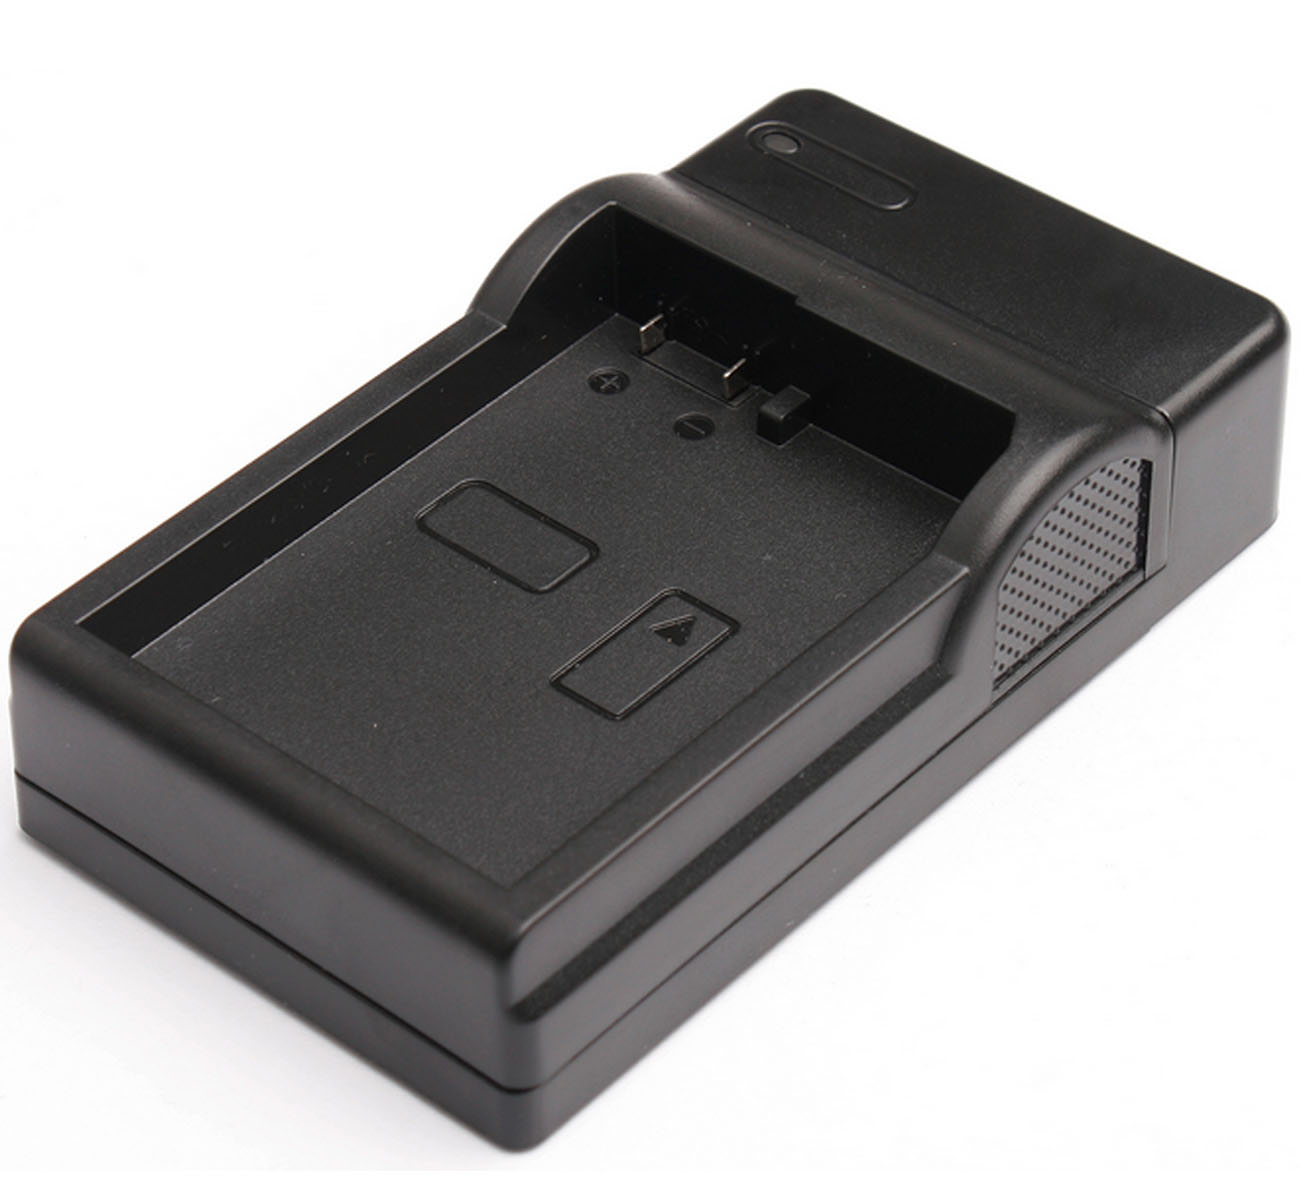 SC-D6550 Digital Video Camcorder SCD6550 LCD USB Battery Charger for Samsung SCD6040 SC-D6040